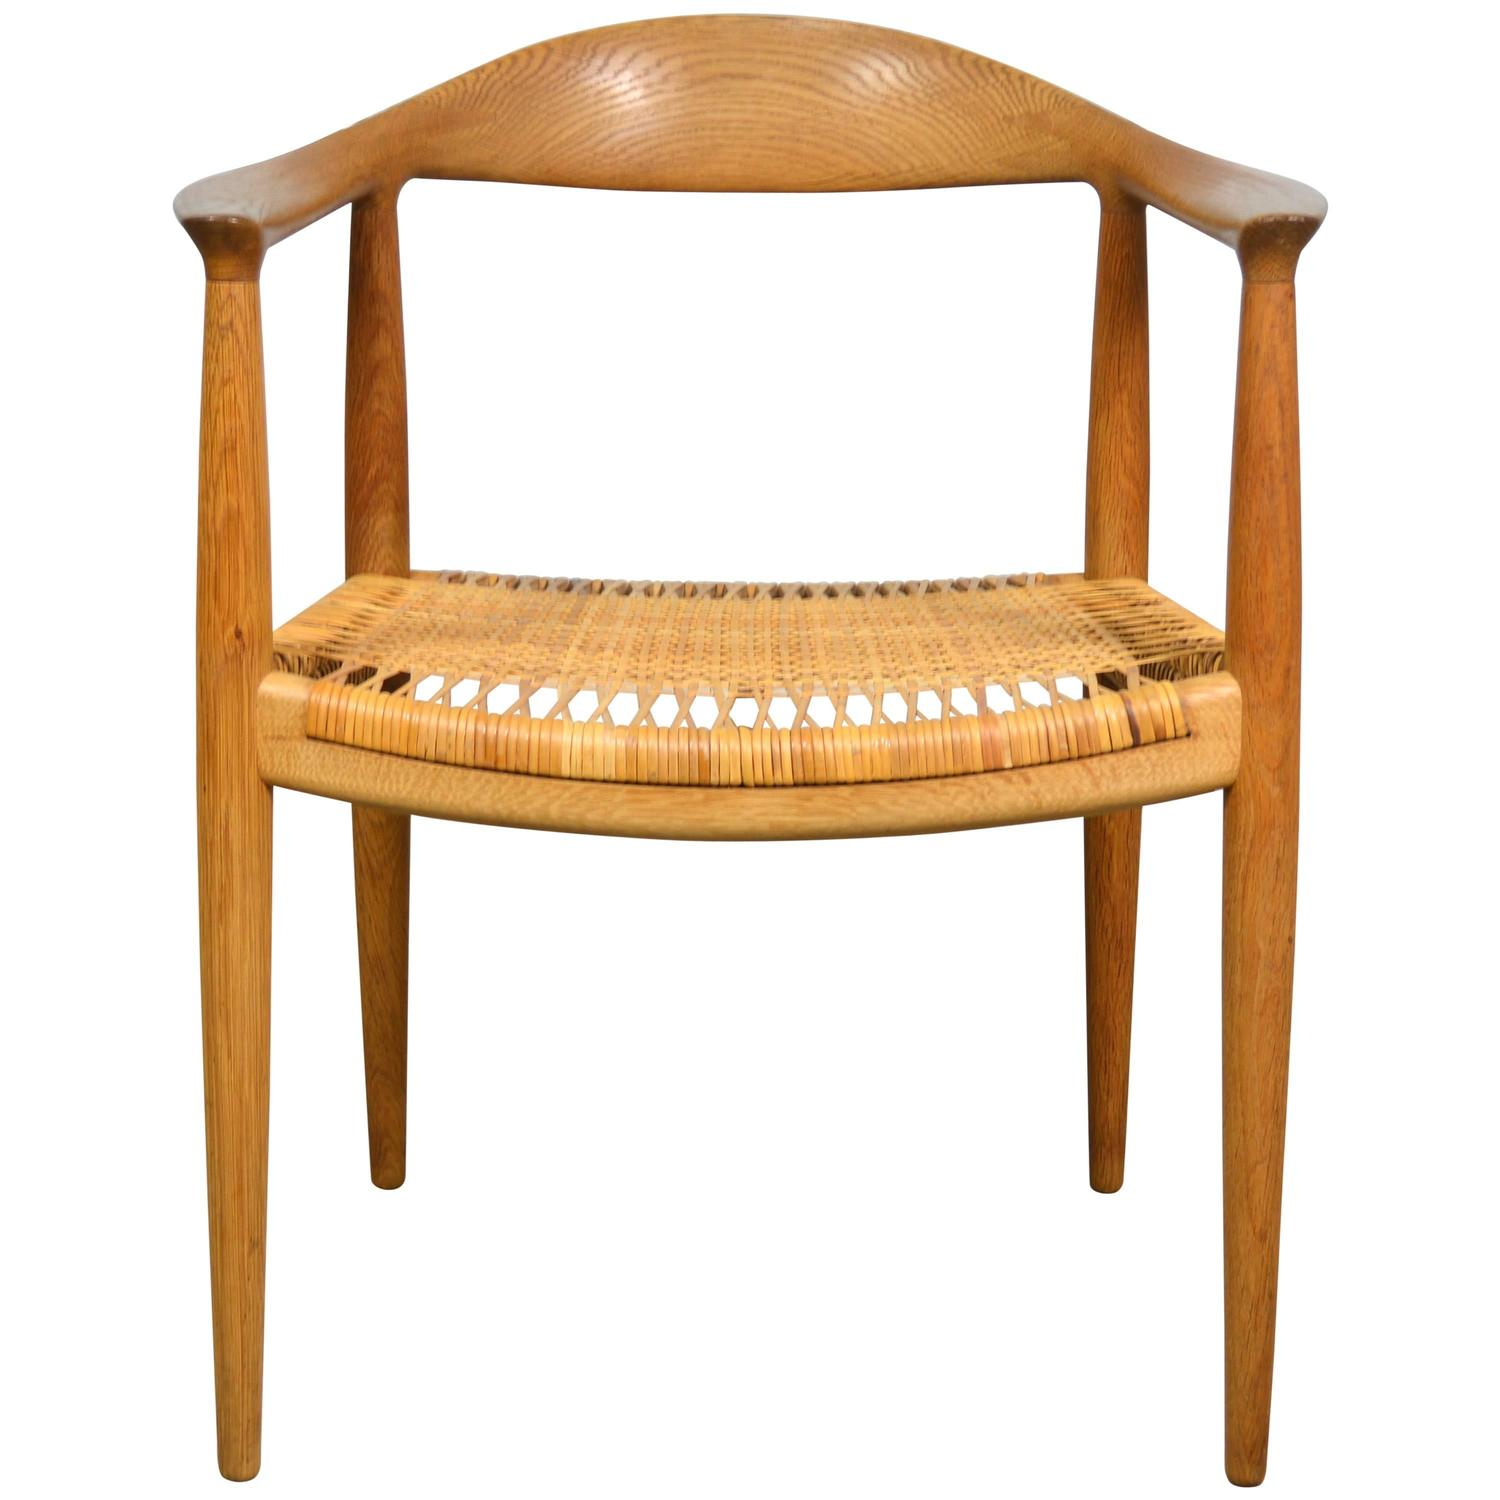 Hans Wegner Quot Round Quot Chair In Oak And Cane At 1stdibs